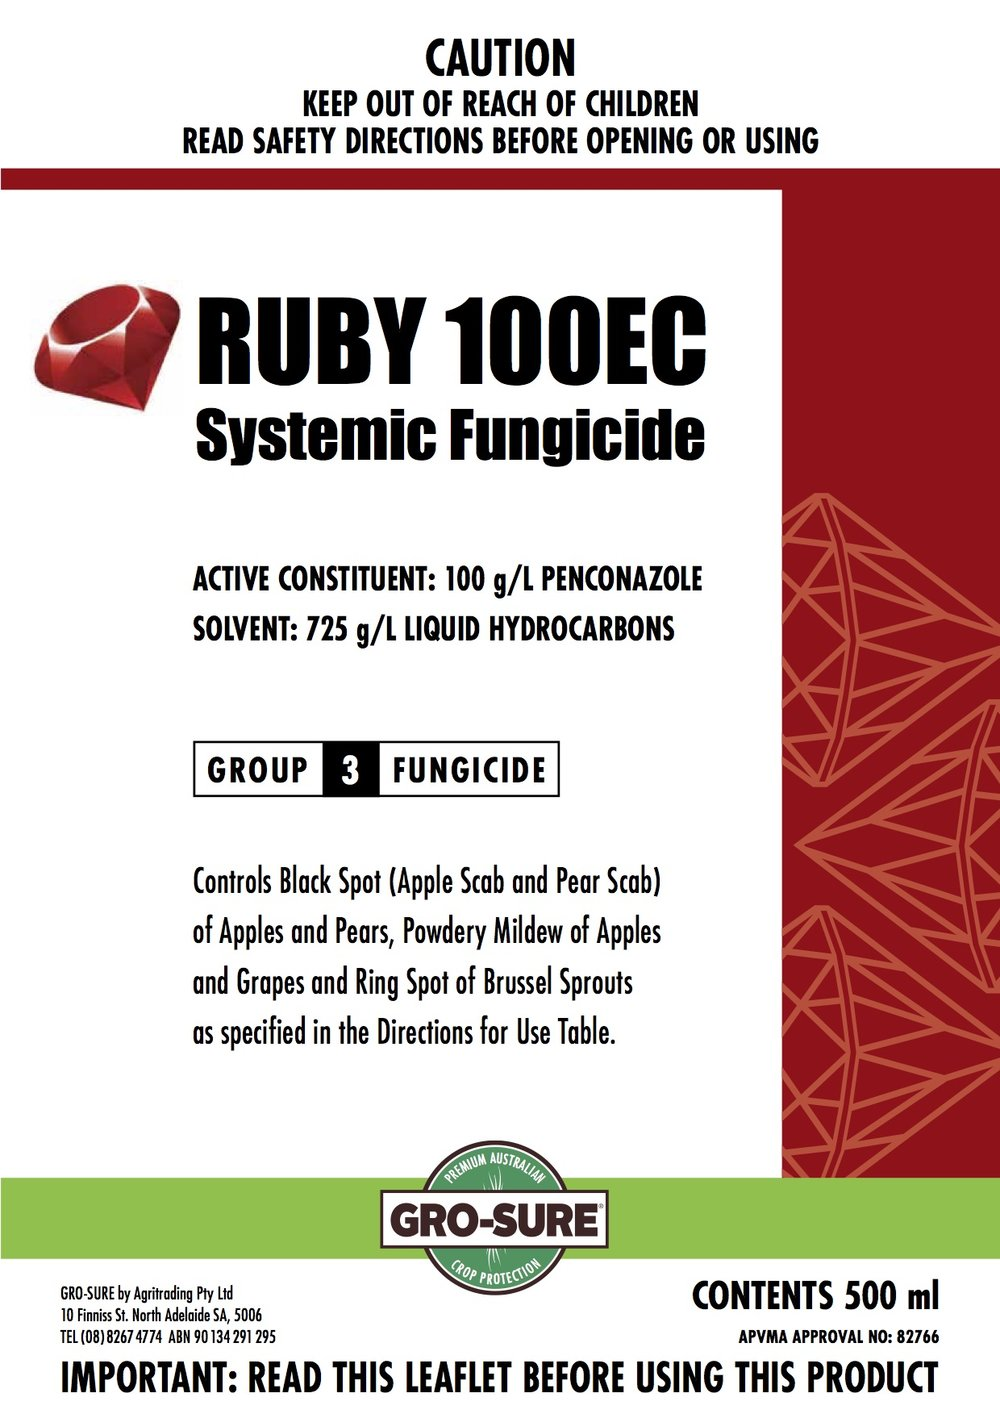 Ruby Web Label copy.jpg